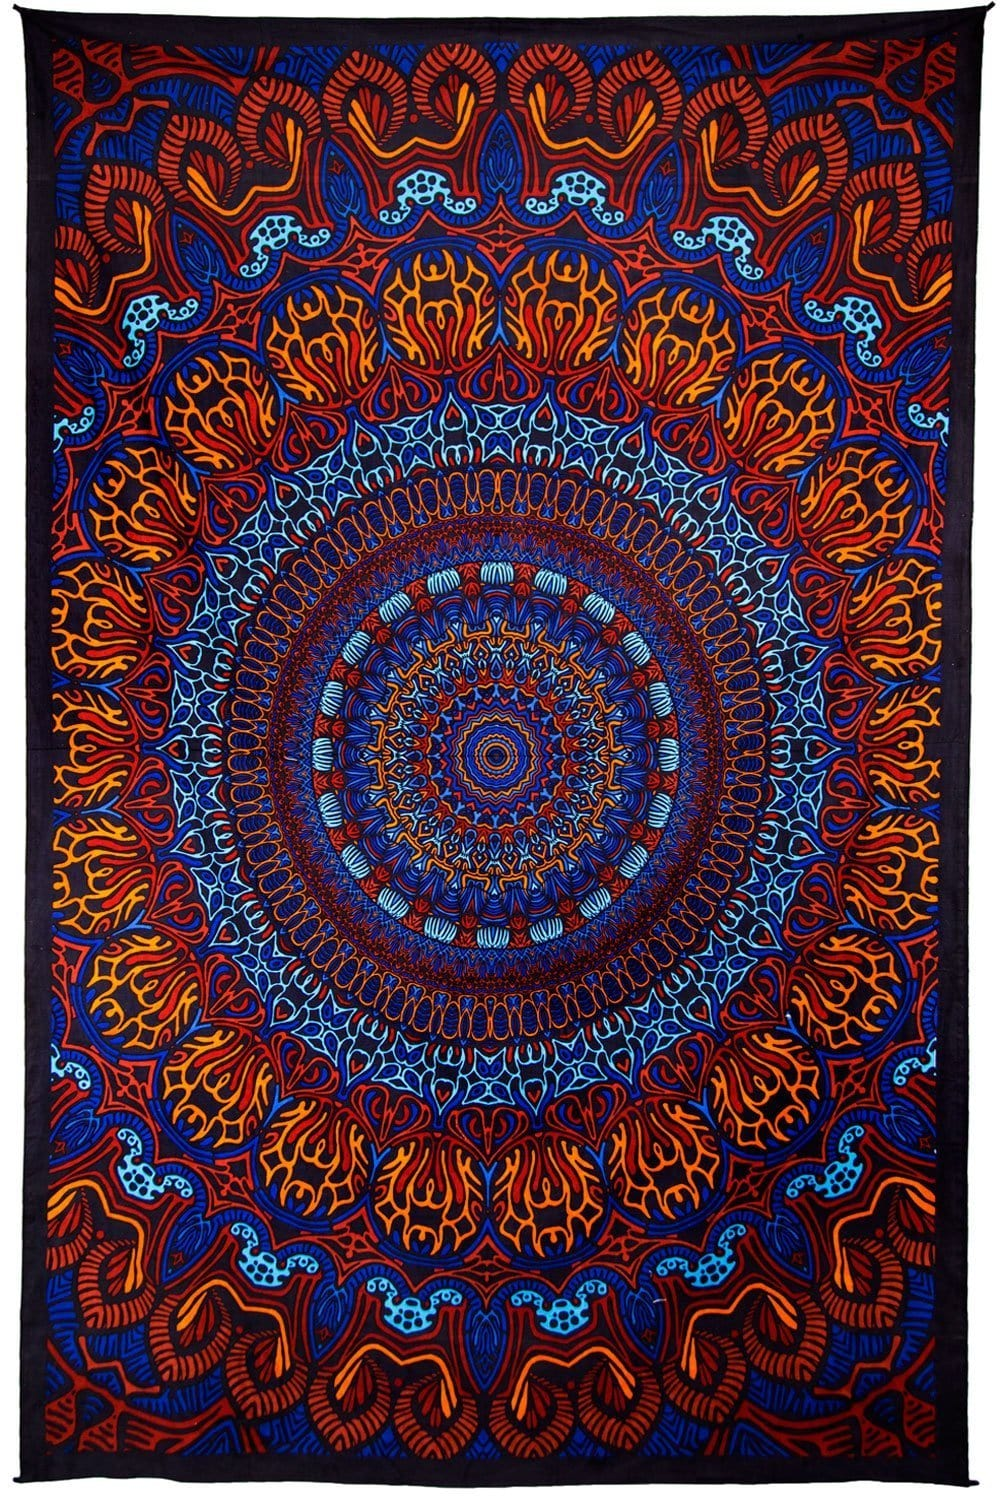 Tapestries Origin of Life - Tapestry 009804